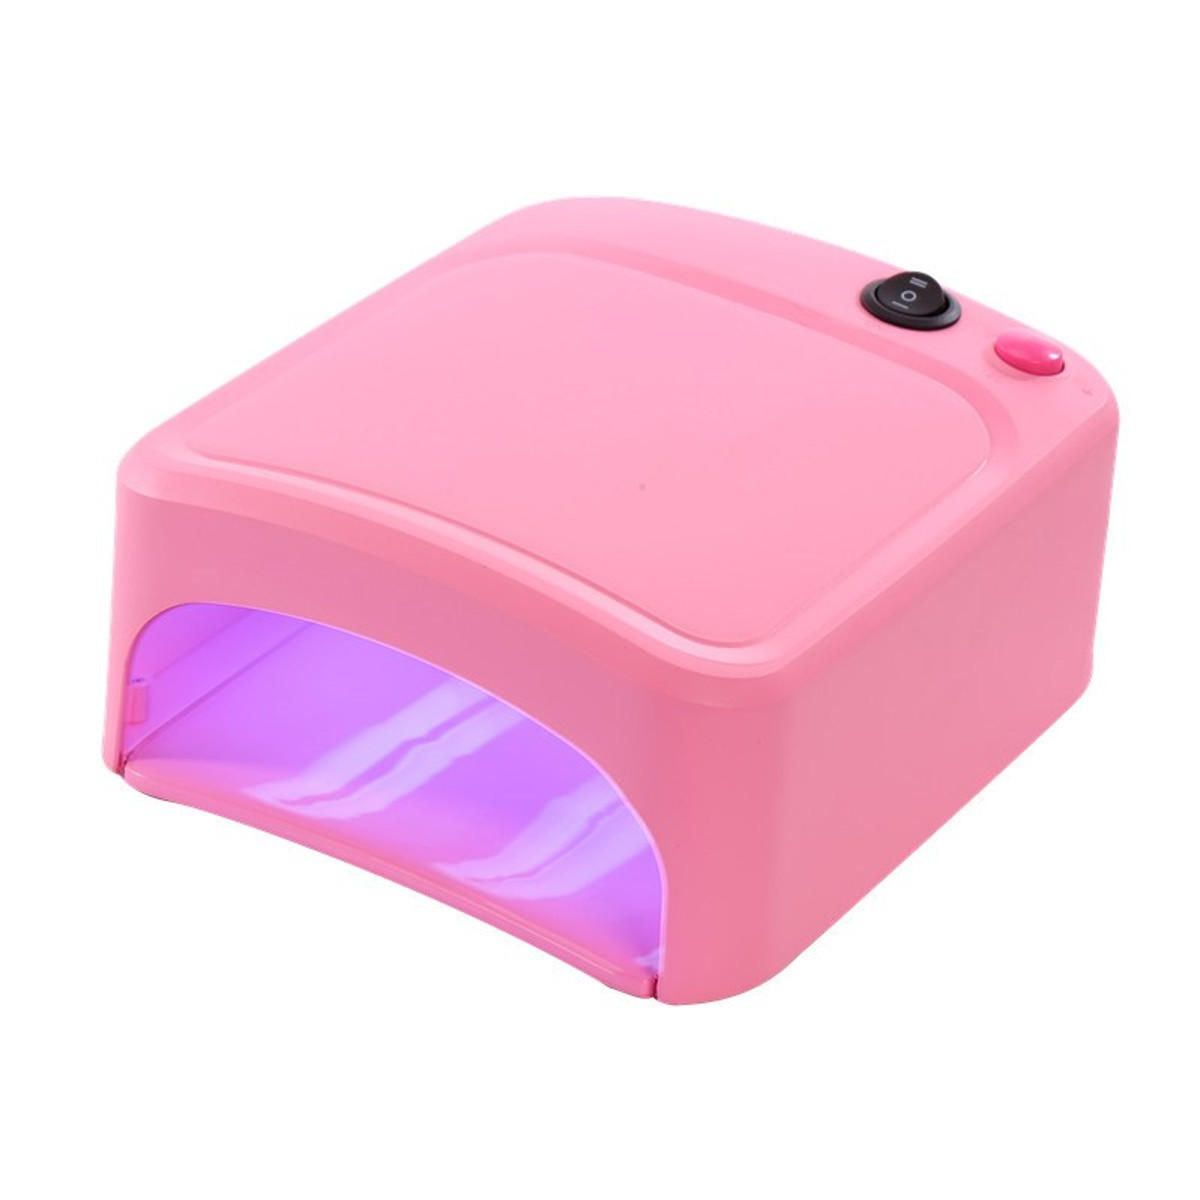 Us 33 59 36w Uv Lamp Nail Polish Dryer Lamp Nail Polish Dryer